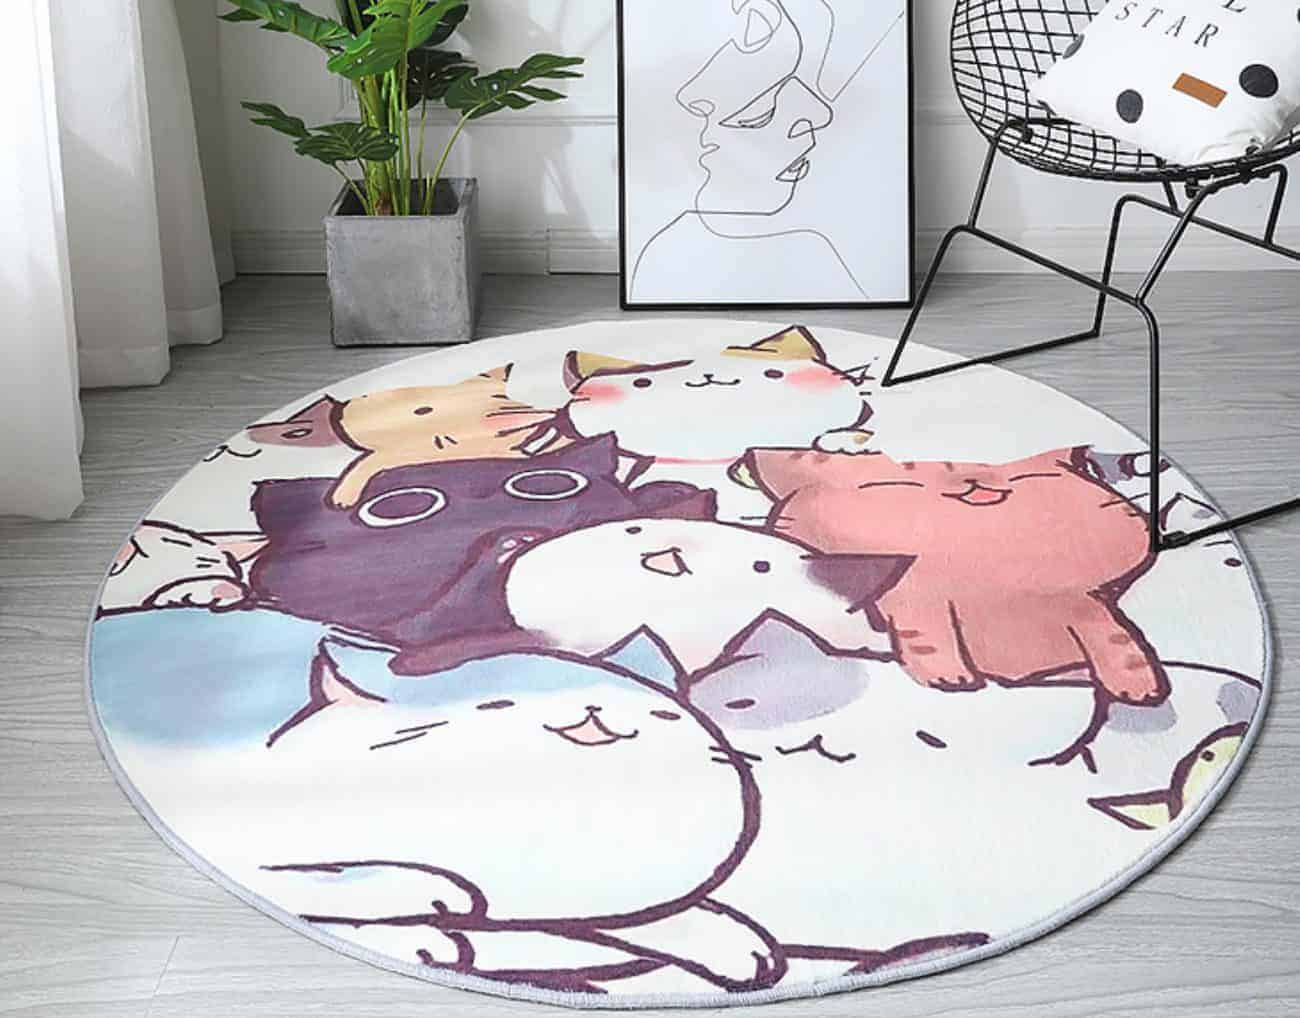 How to Choose the Best Chair Mat